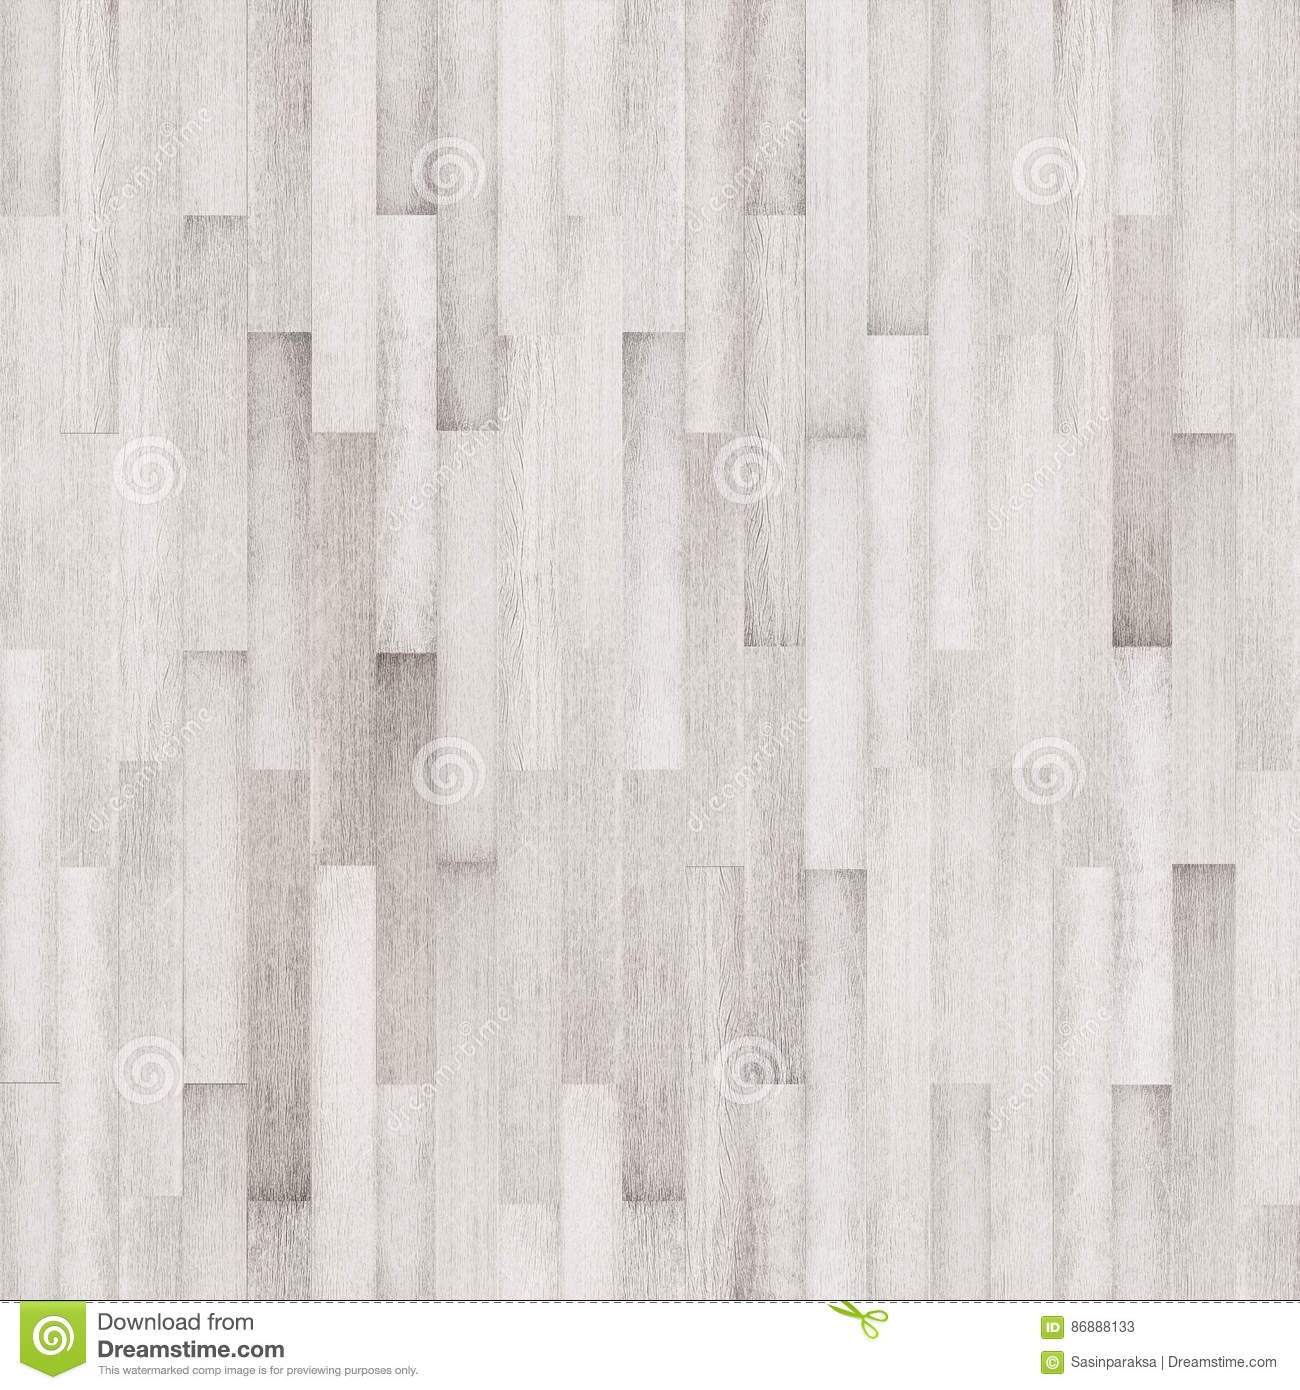 white wood floor texture. White Wood Texture  Seamless Floor Stock Image of panel laminate 86888133